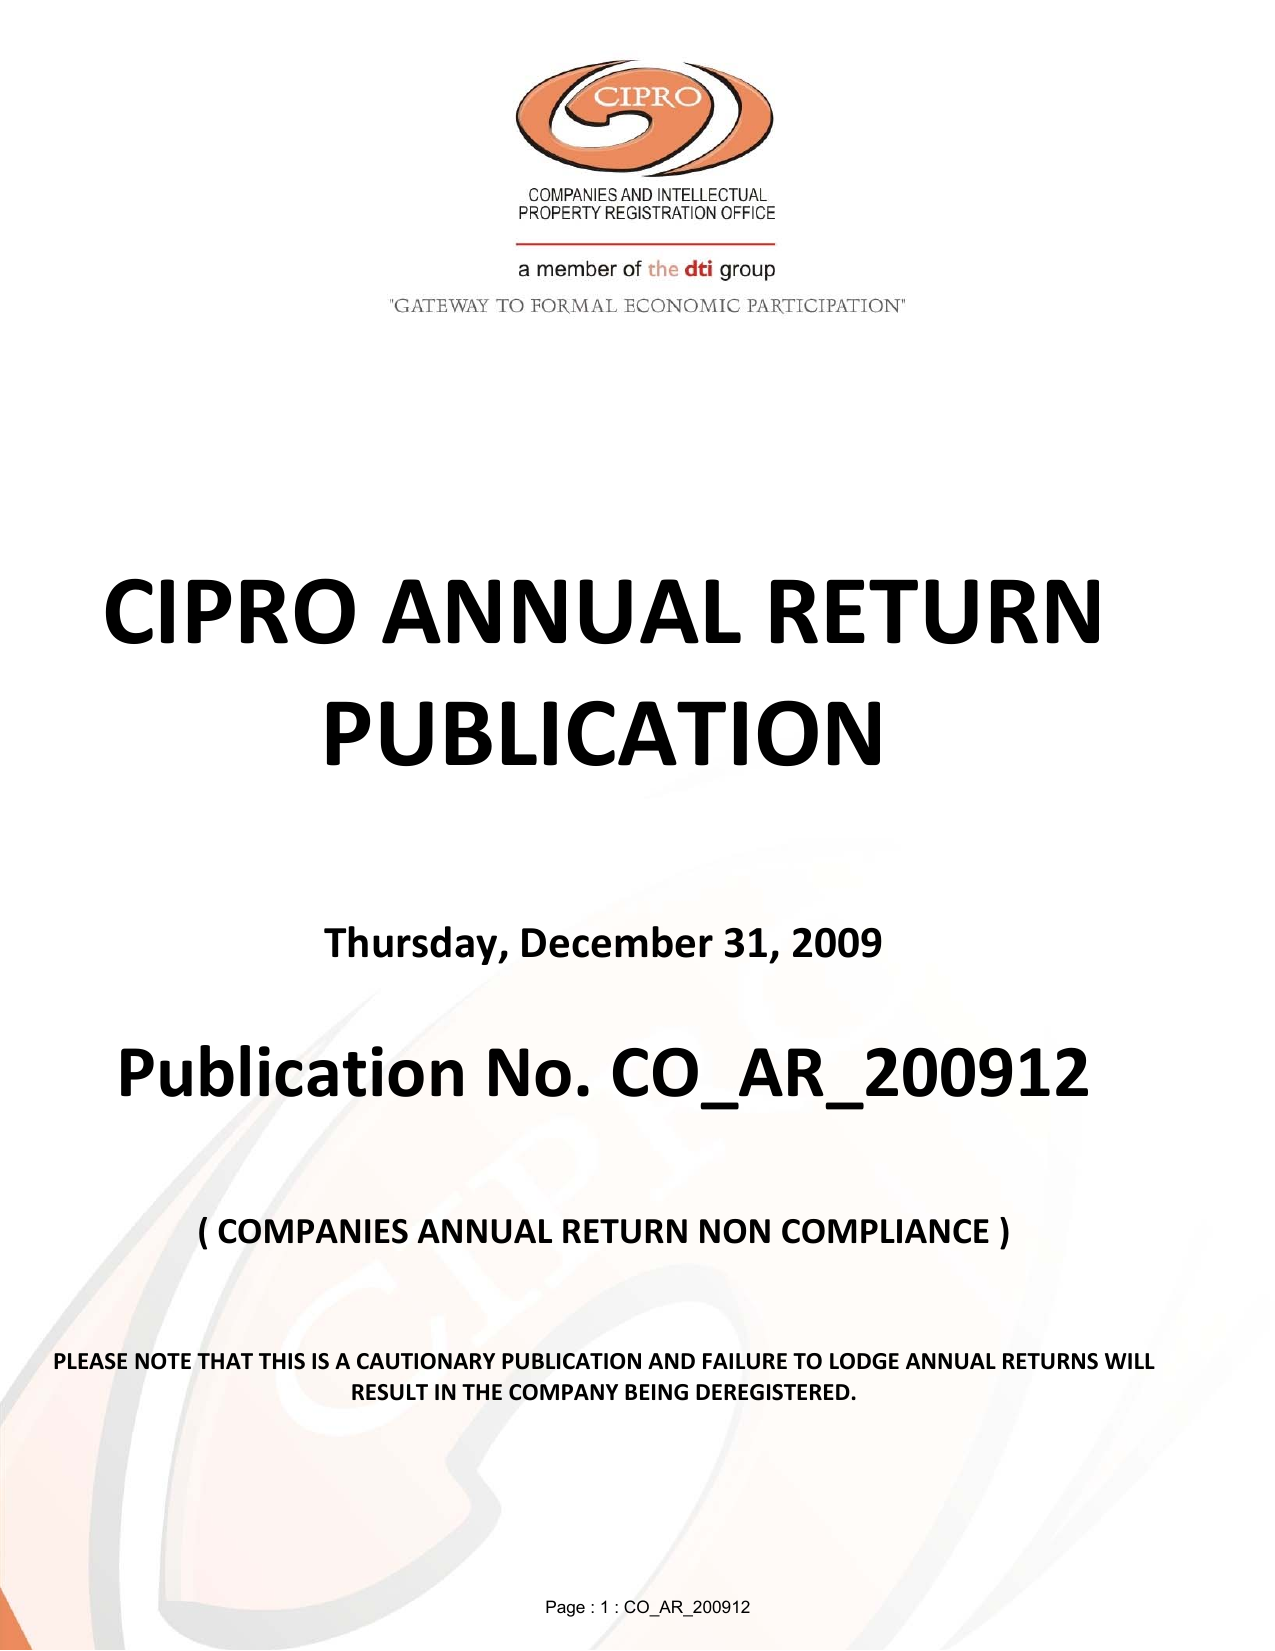 Cipro annual returns for cc